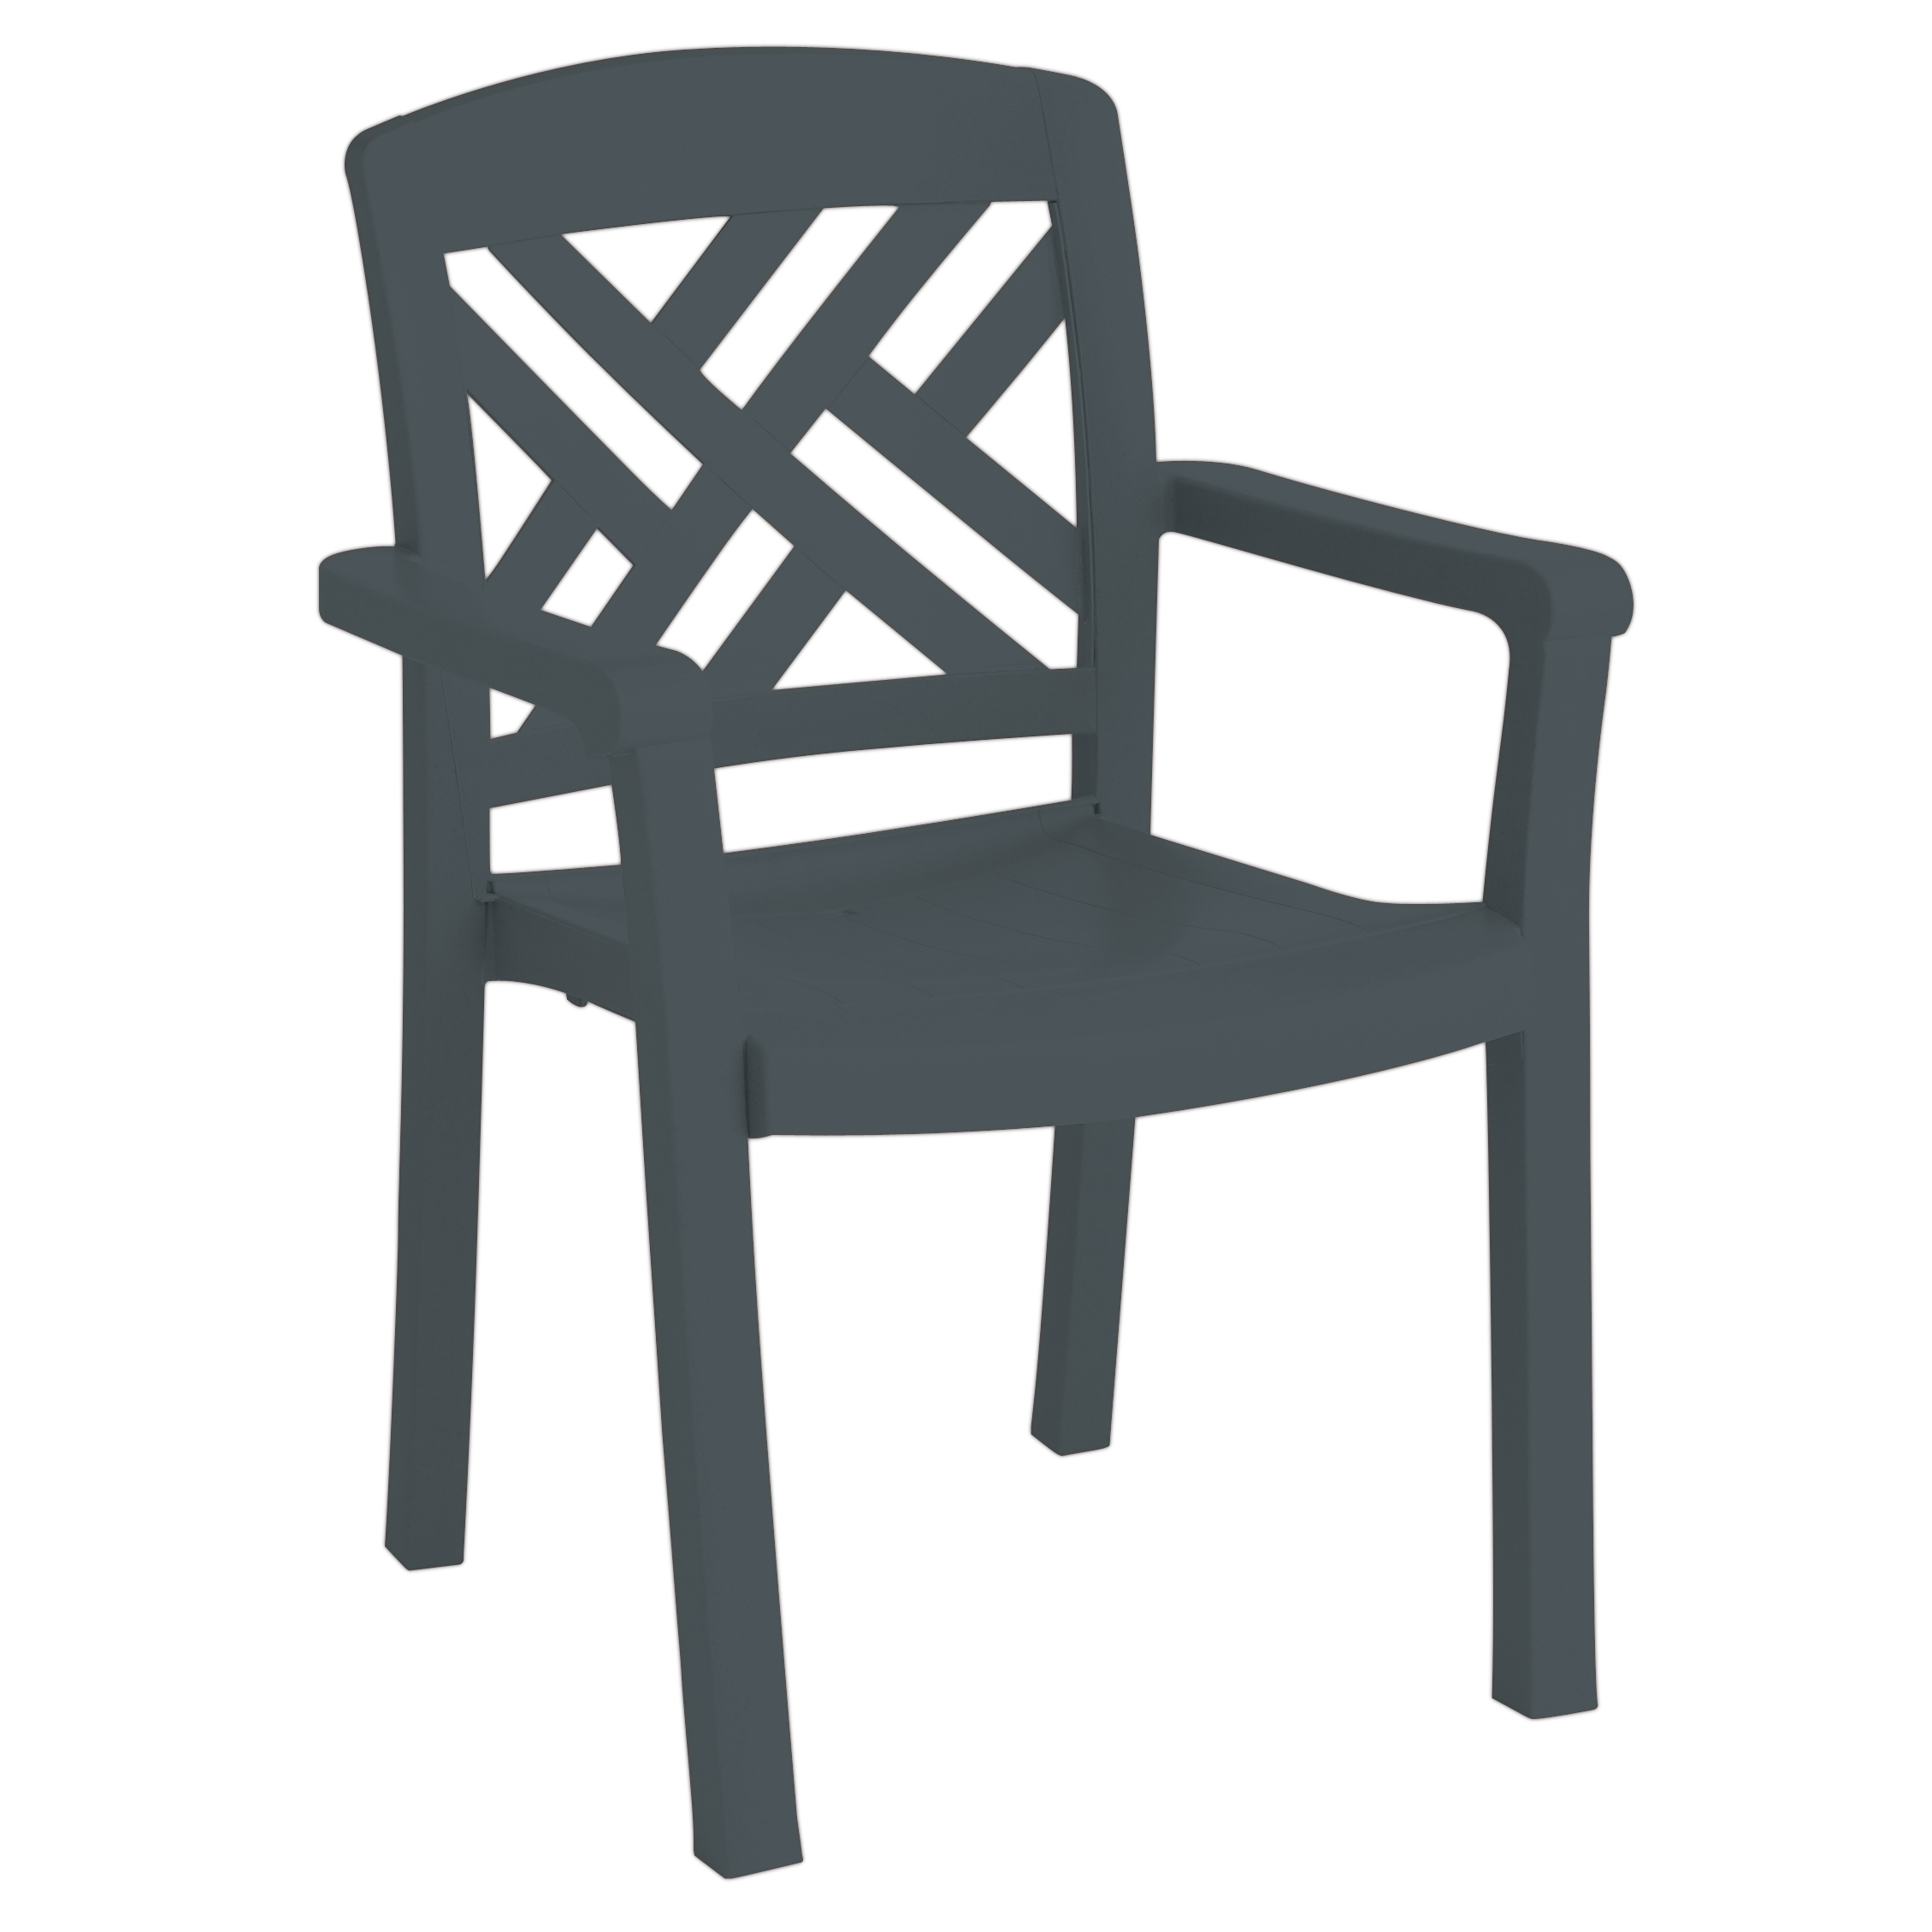 Grosfillex US452002 chair, armchair, stacking, outdoor